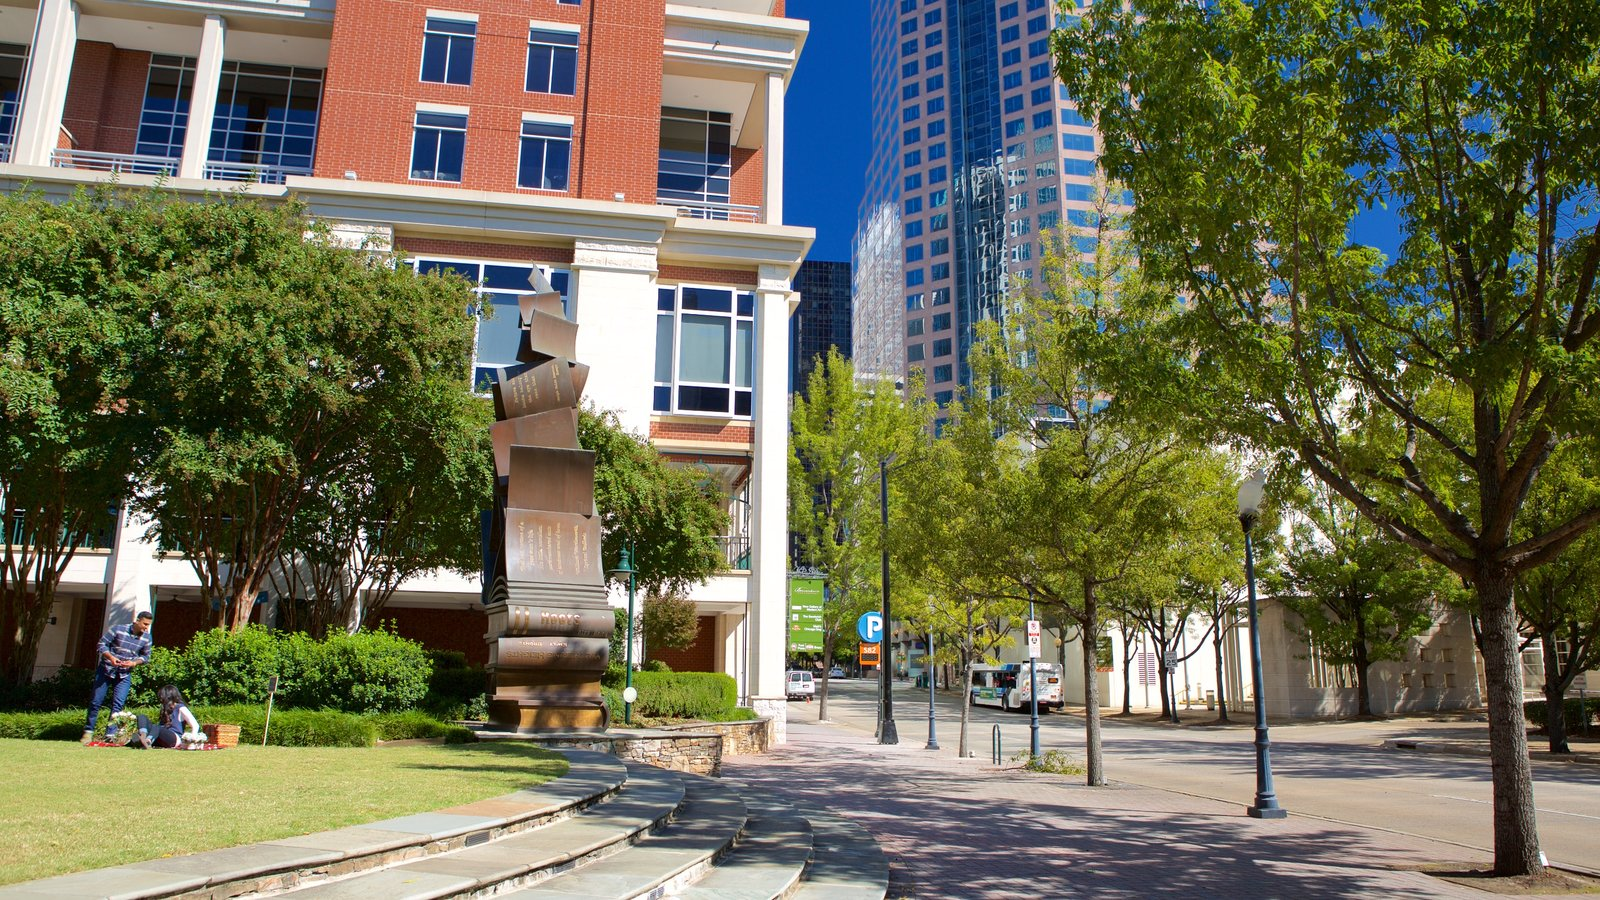 Charlotte showing outdoor art and heritage architecture